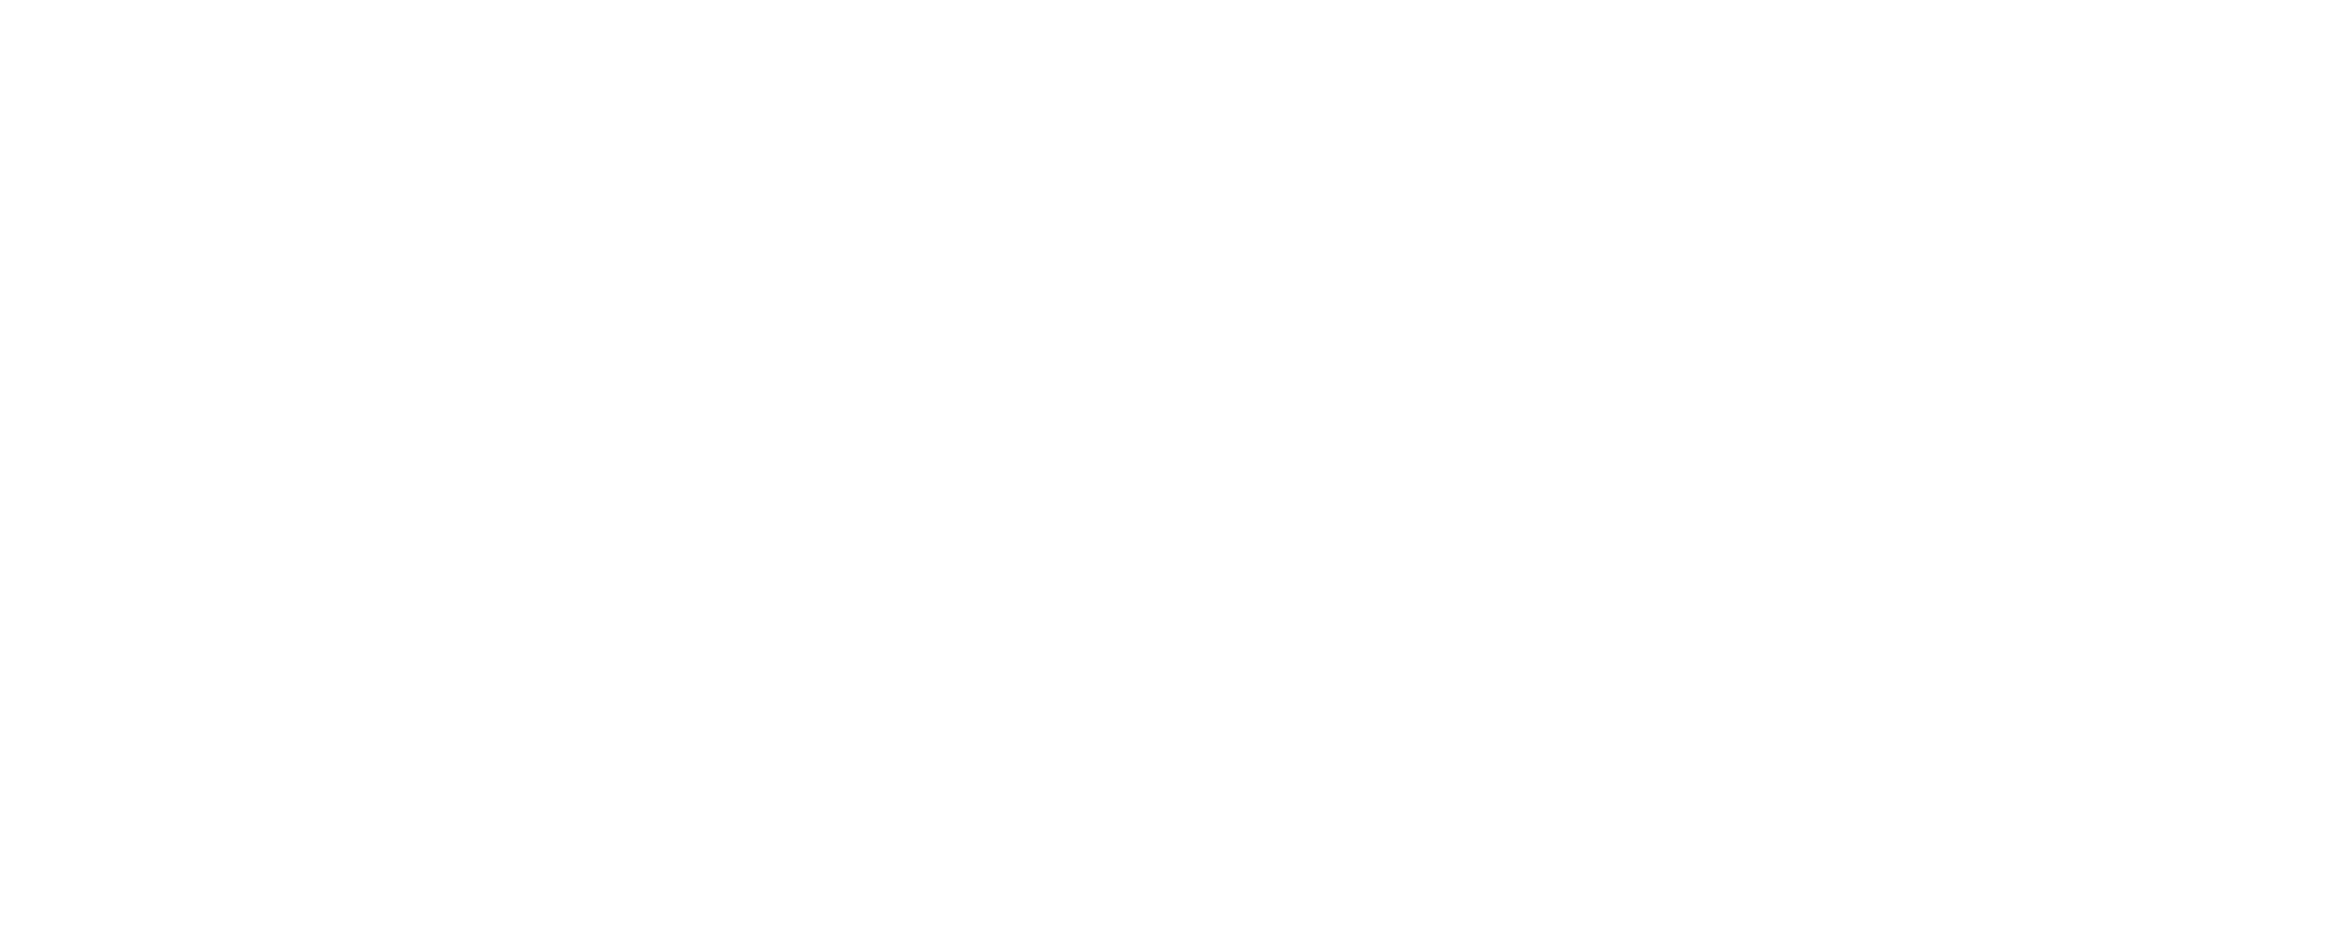 The Psilocybin Chronicles